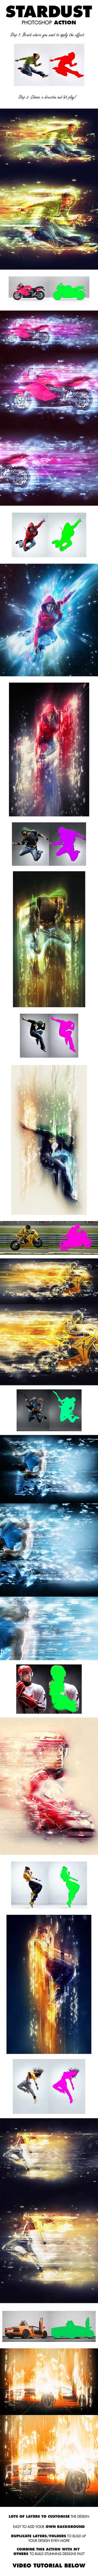 StarDust Photoshop Action - Photo Effects Actions